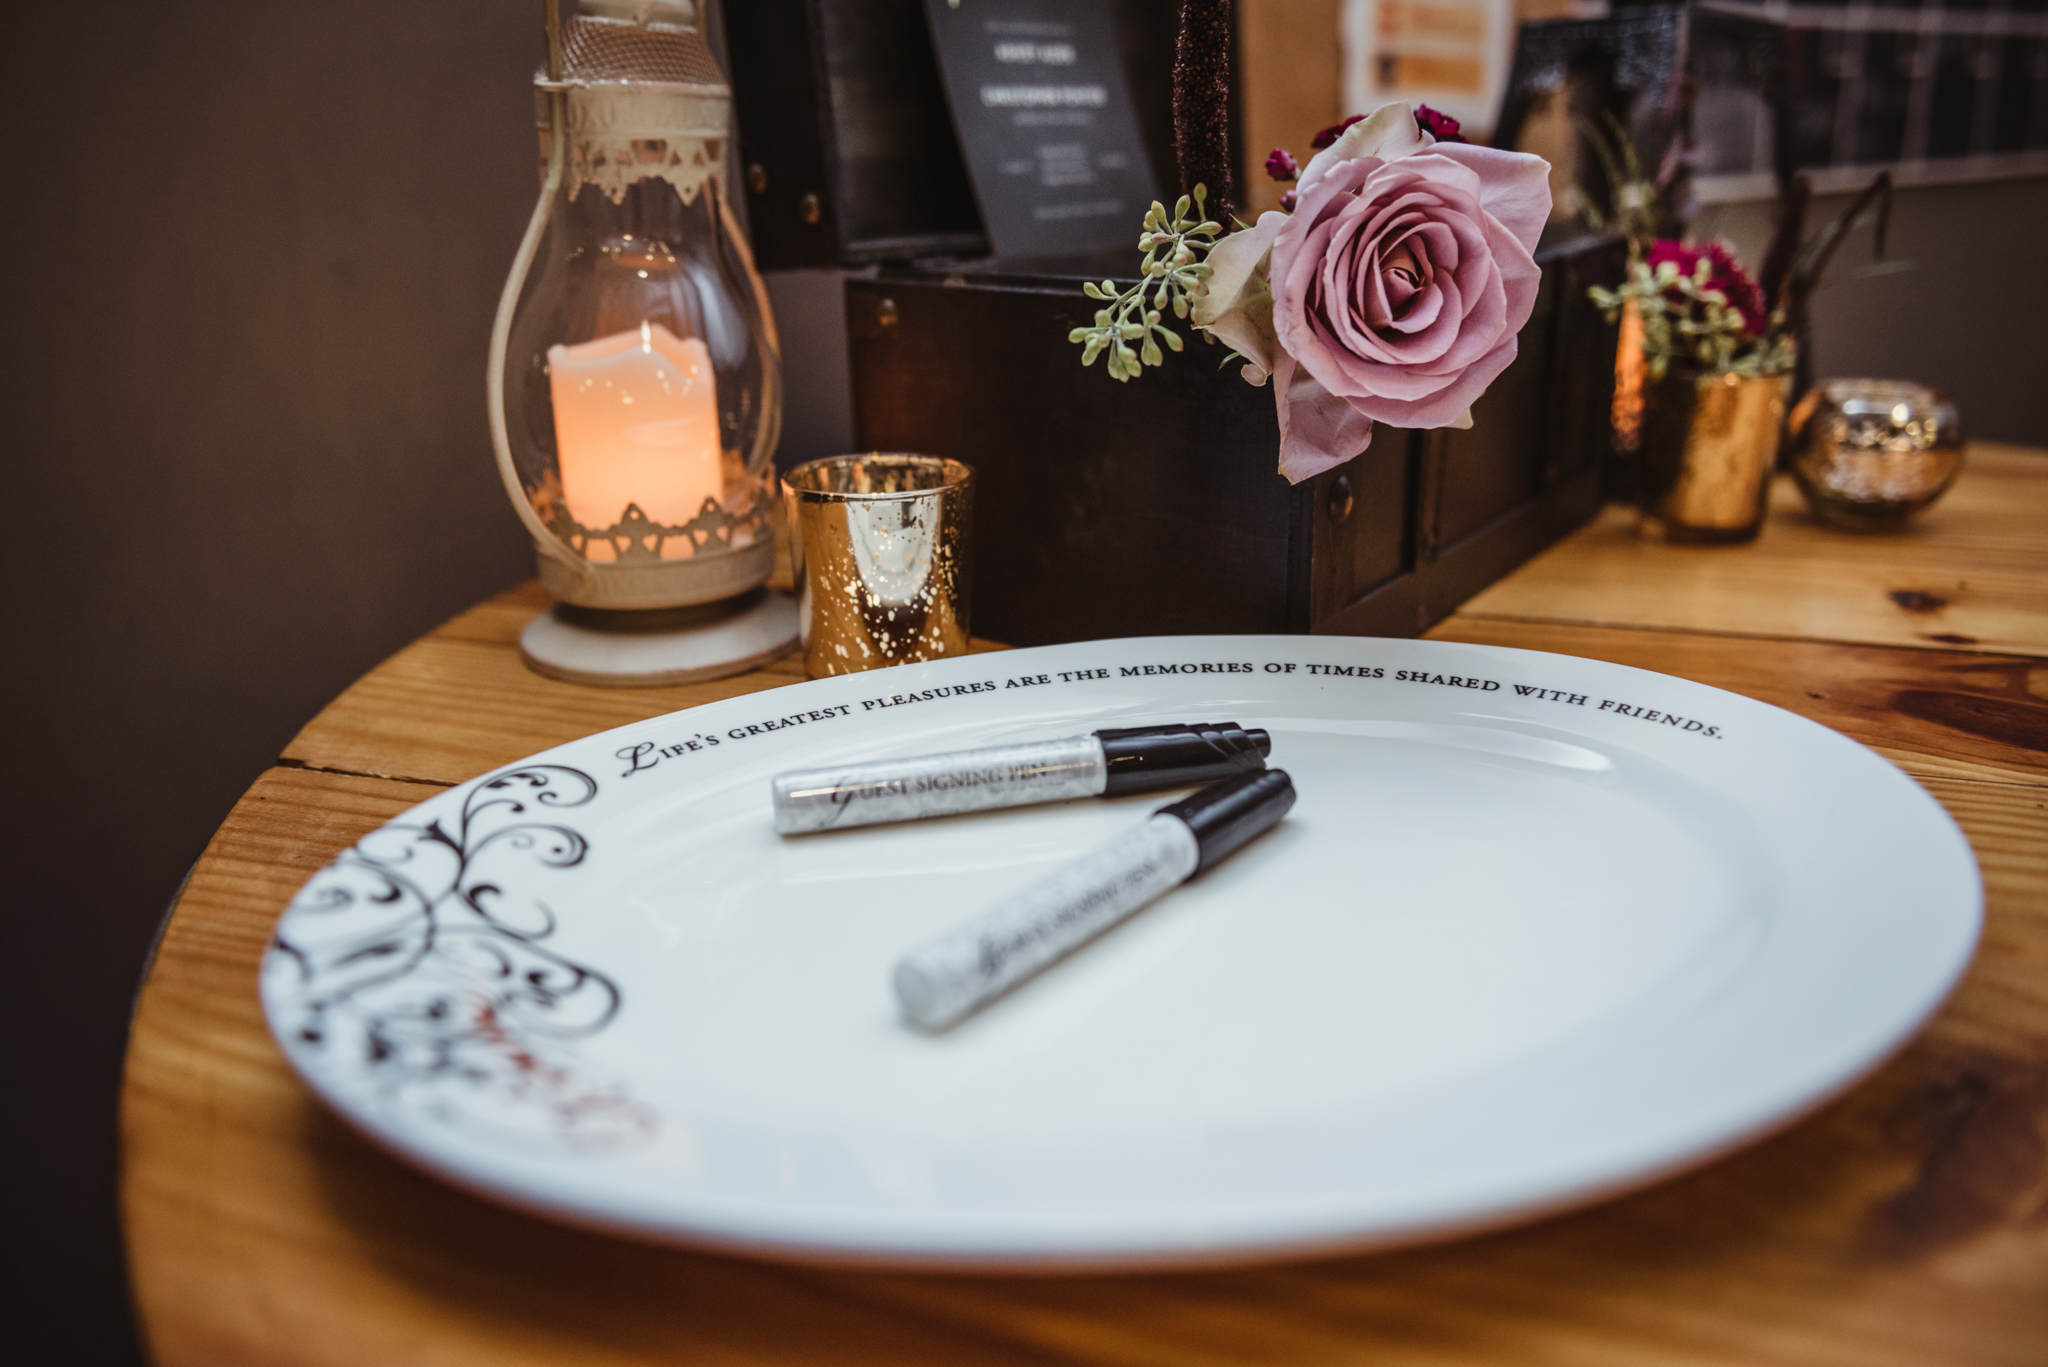 instead-of-a-guestbook-the-wedding-guests-sign-a-plate.jpg